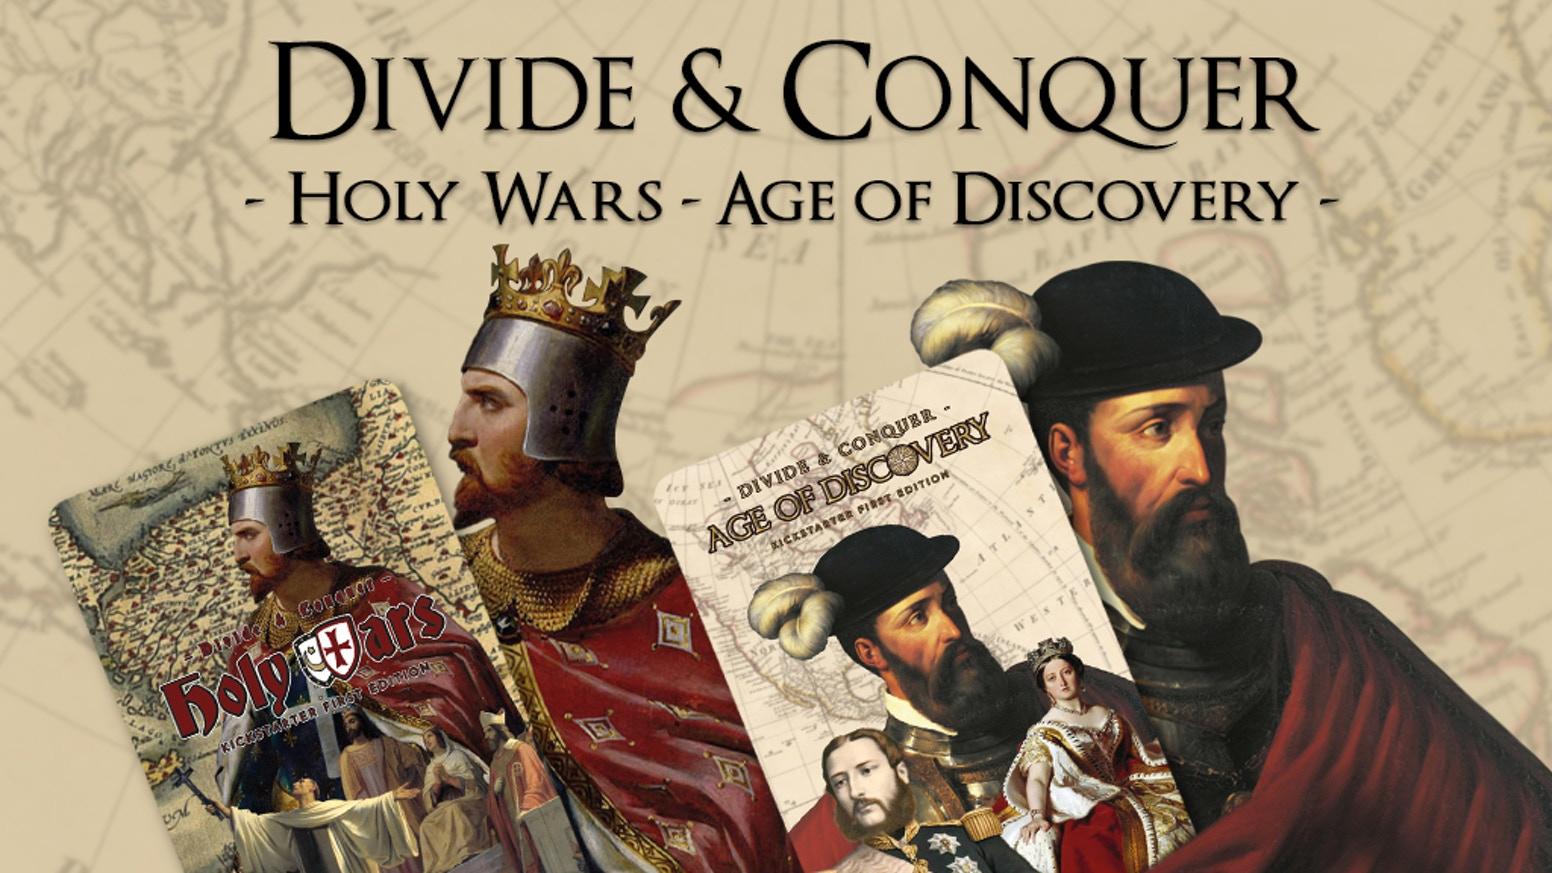 Holy Wars & Age of Discovery are part of the Divide & Conquer series of collectable card games by Alcázar Games.